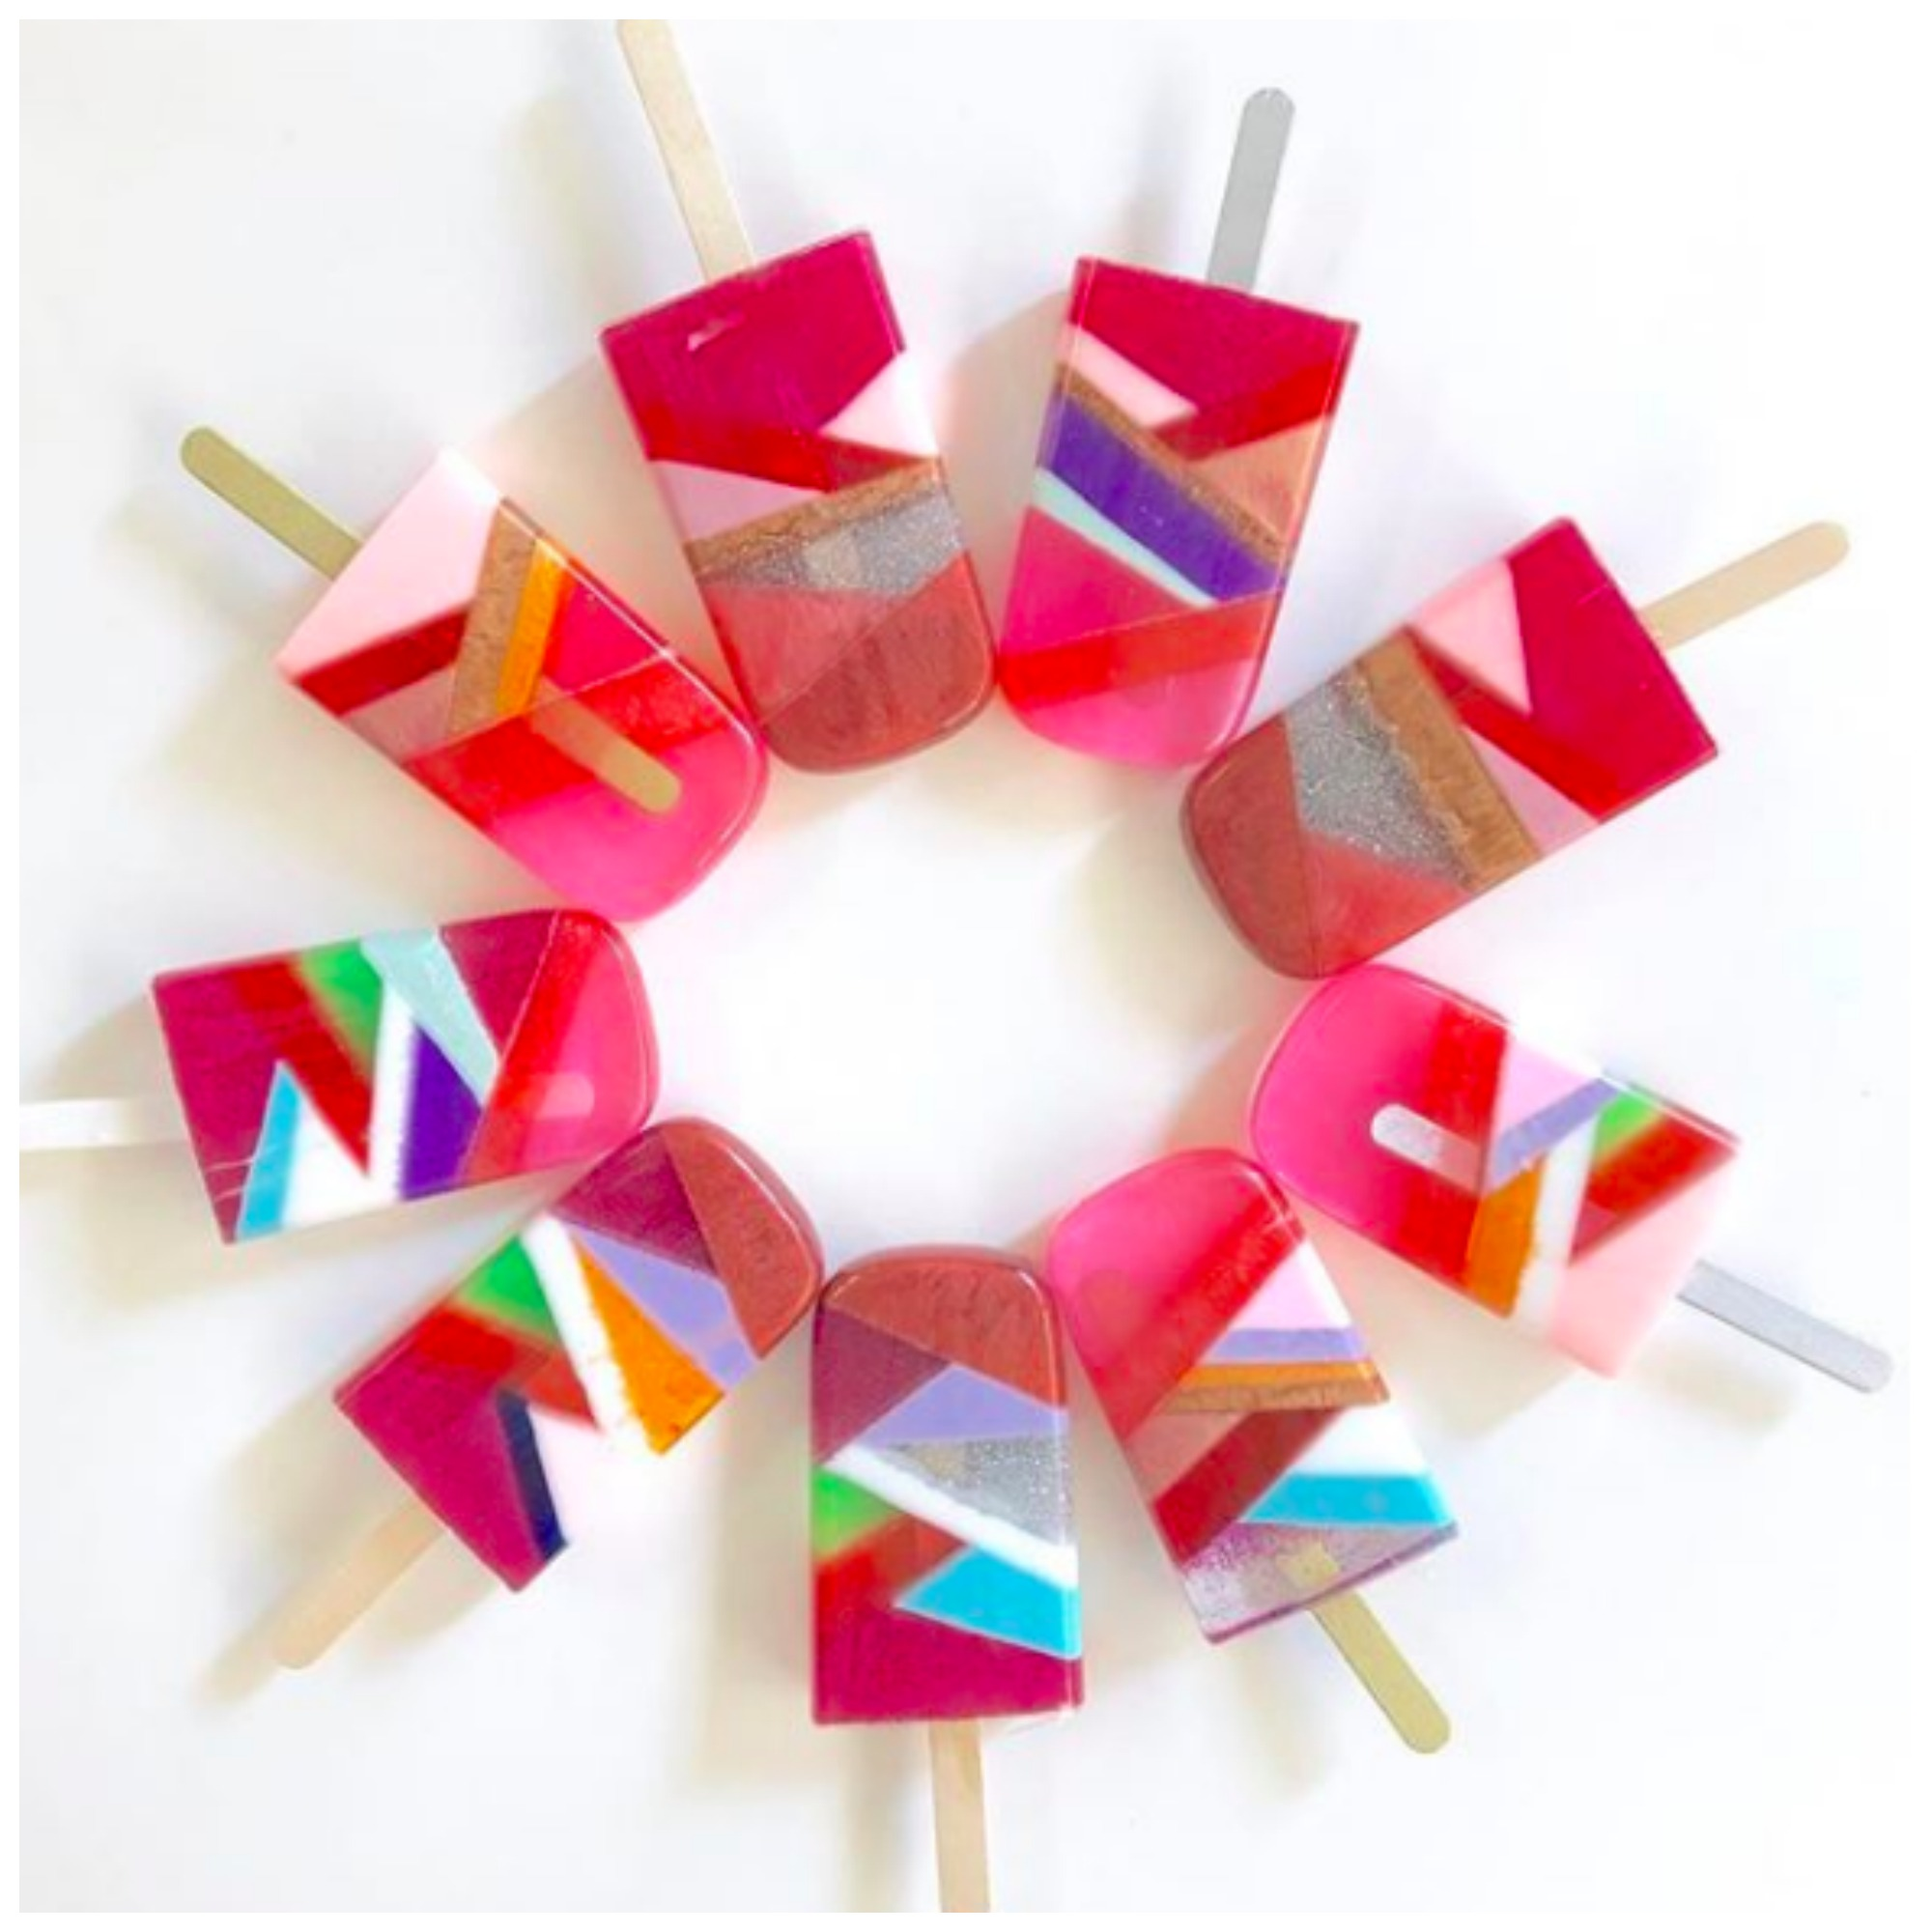 Artist Interview: The Cool and Colorful Popsicle, Lollipop and Ice cream Art Looks So Good You'll Want To Eat them!